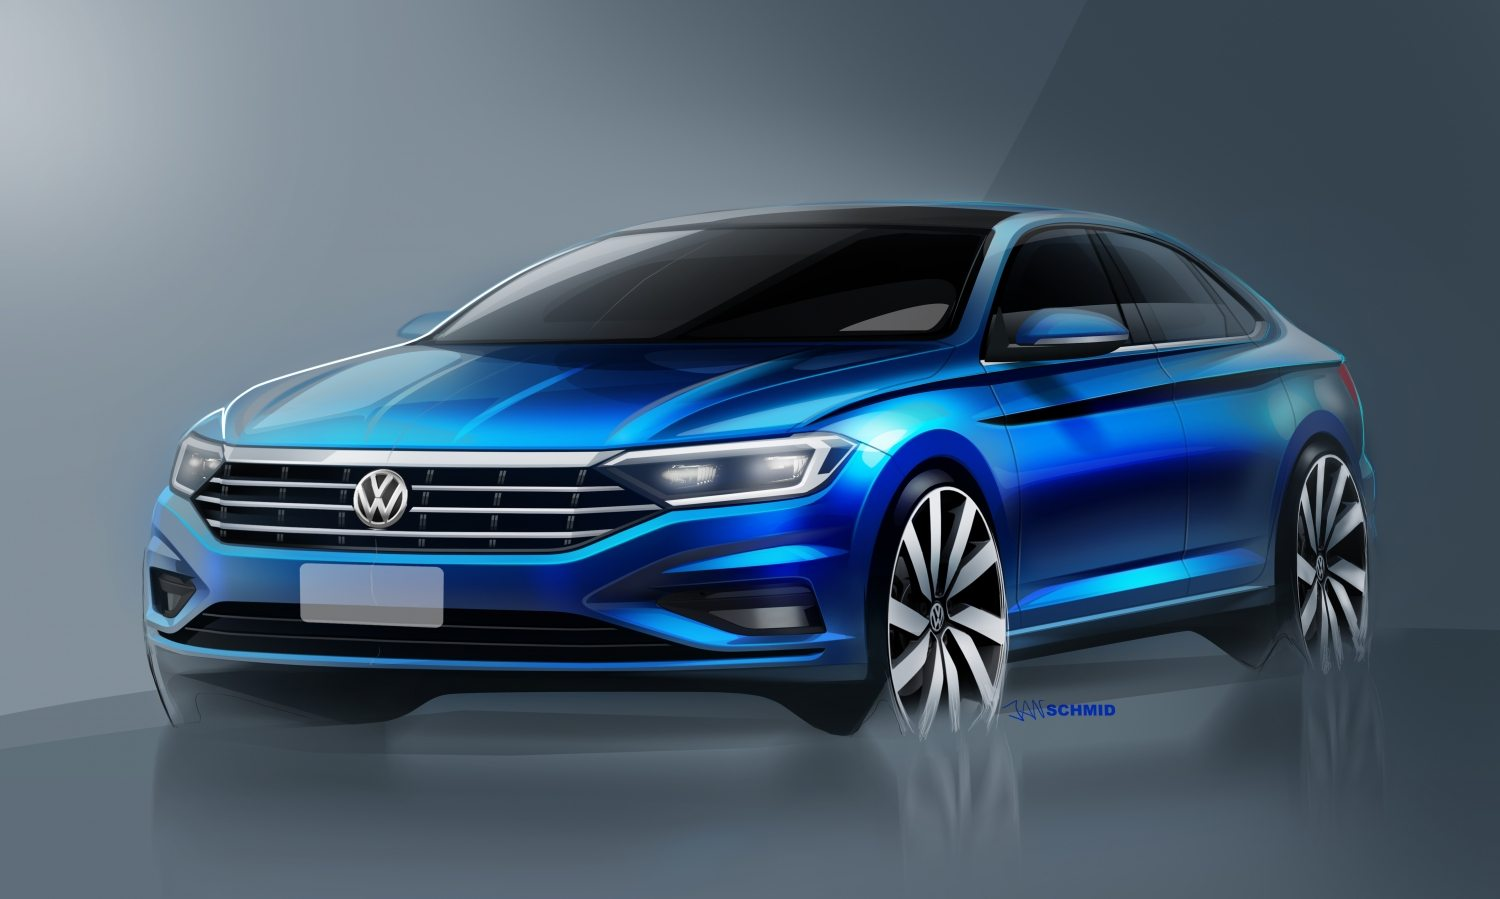 Sketch of the 2019 Volkswagen Jetta to be revealed at the 2018 Detroit Motor Show